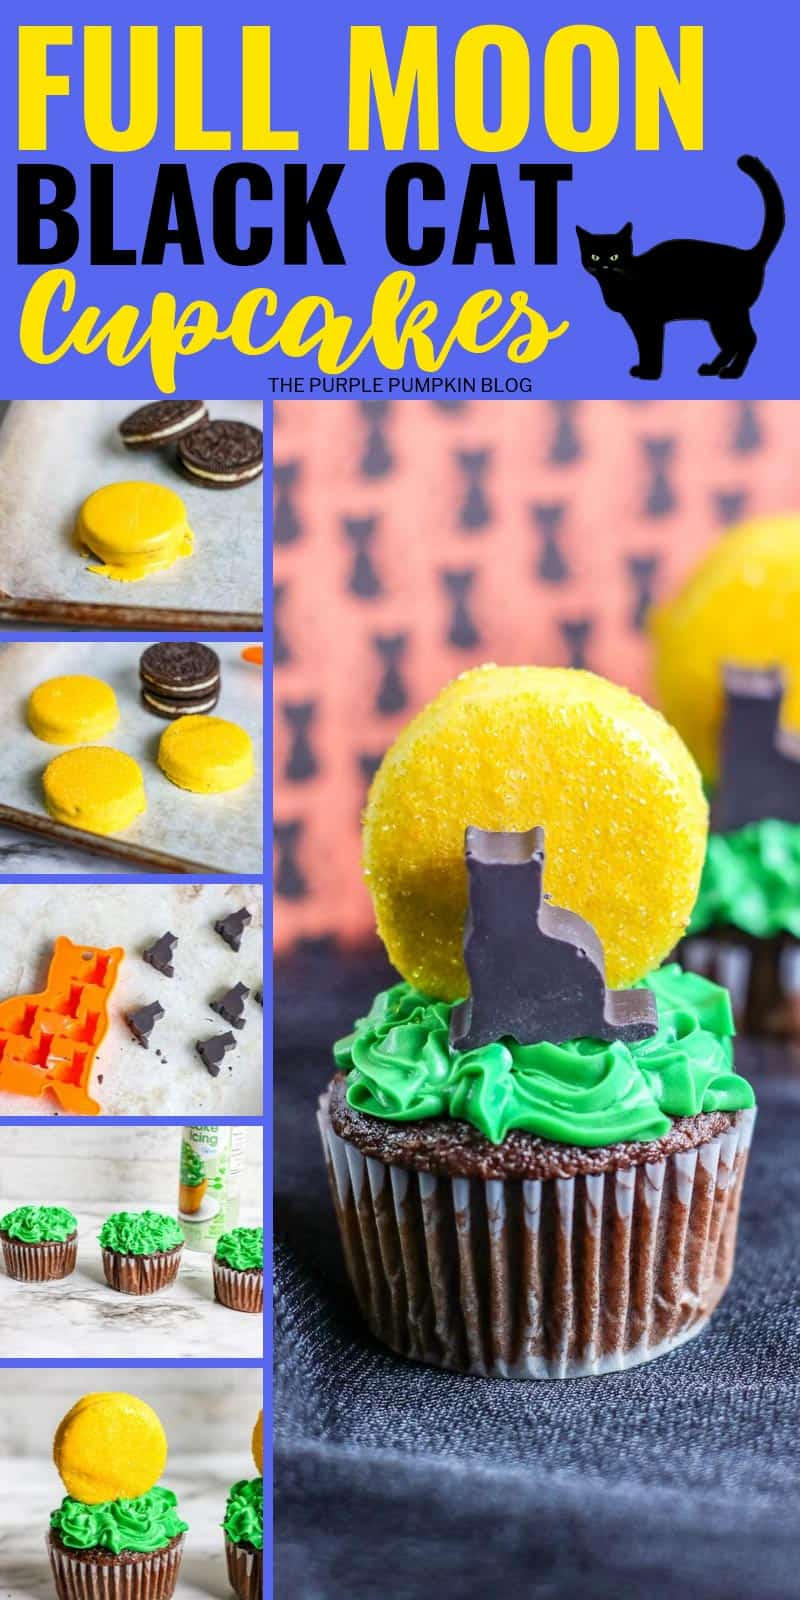 how to make full moon black cat cupcakes for halloween